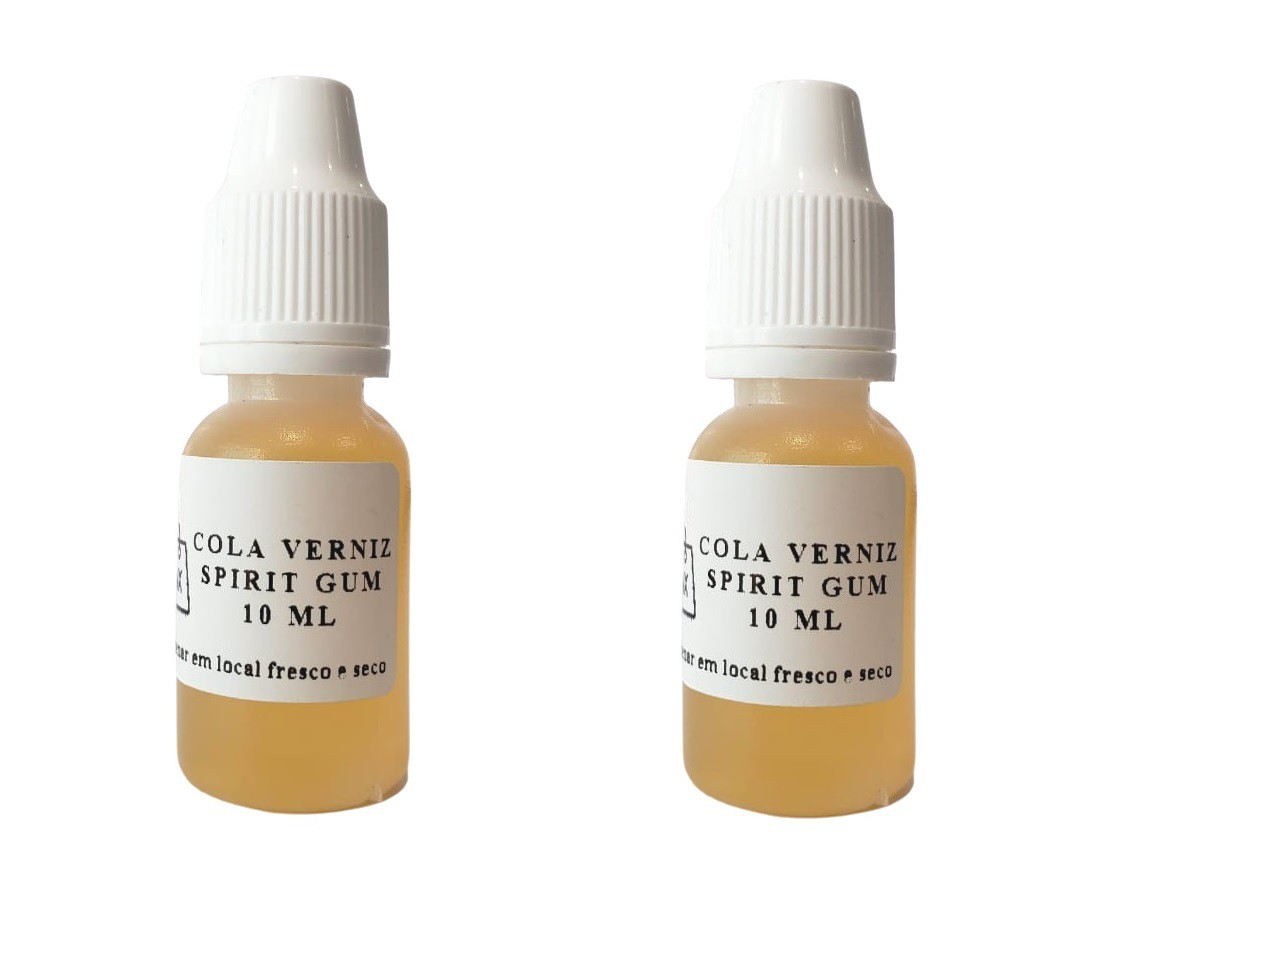 Kit 3 Colas Spirit Gum verniz 10ml para laces e perucas